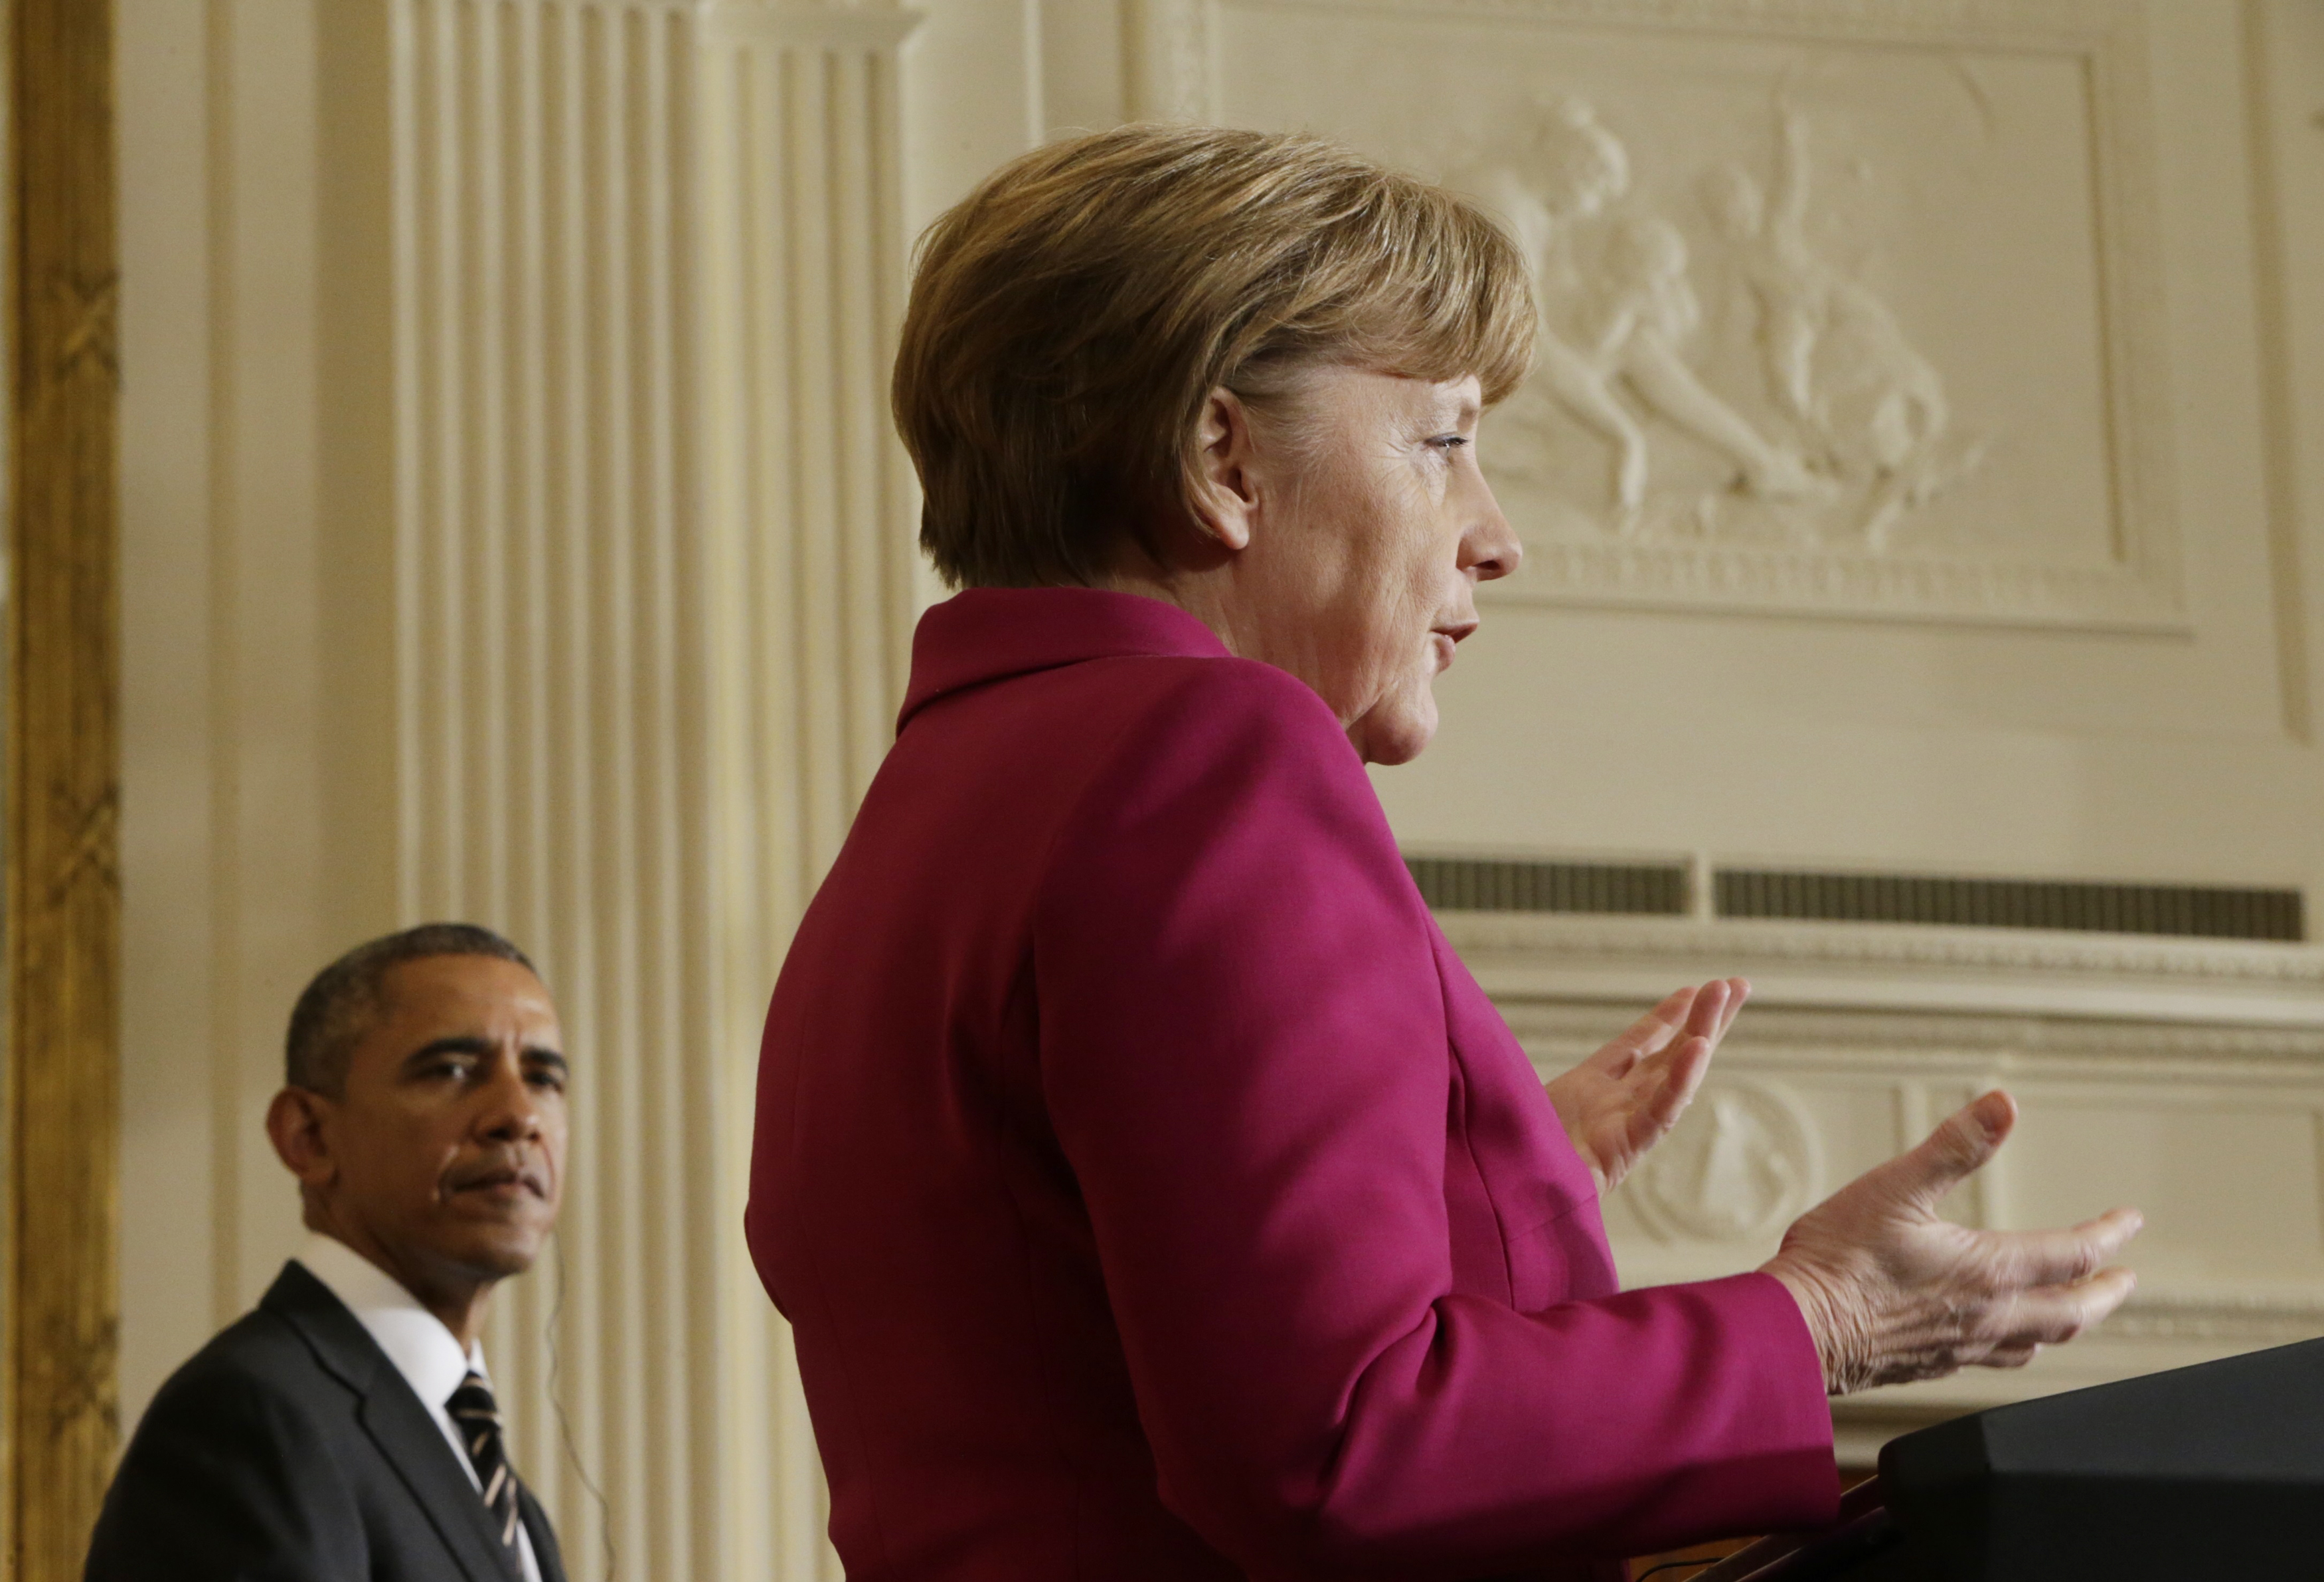 German Chancellor Angela Merkel speaks as she holds a joint news conference with U.S. President Barack Obama in the East Room of the White House in Washington February 9, 2015.   REUTERS/Gary Cameron (UNITED STATES  - Tags: POLITICS CIVIL UNREST)   - RTR4OWA0